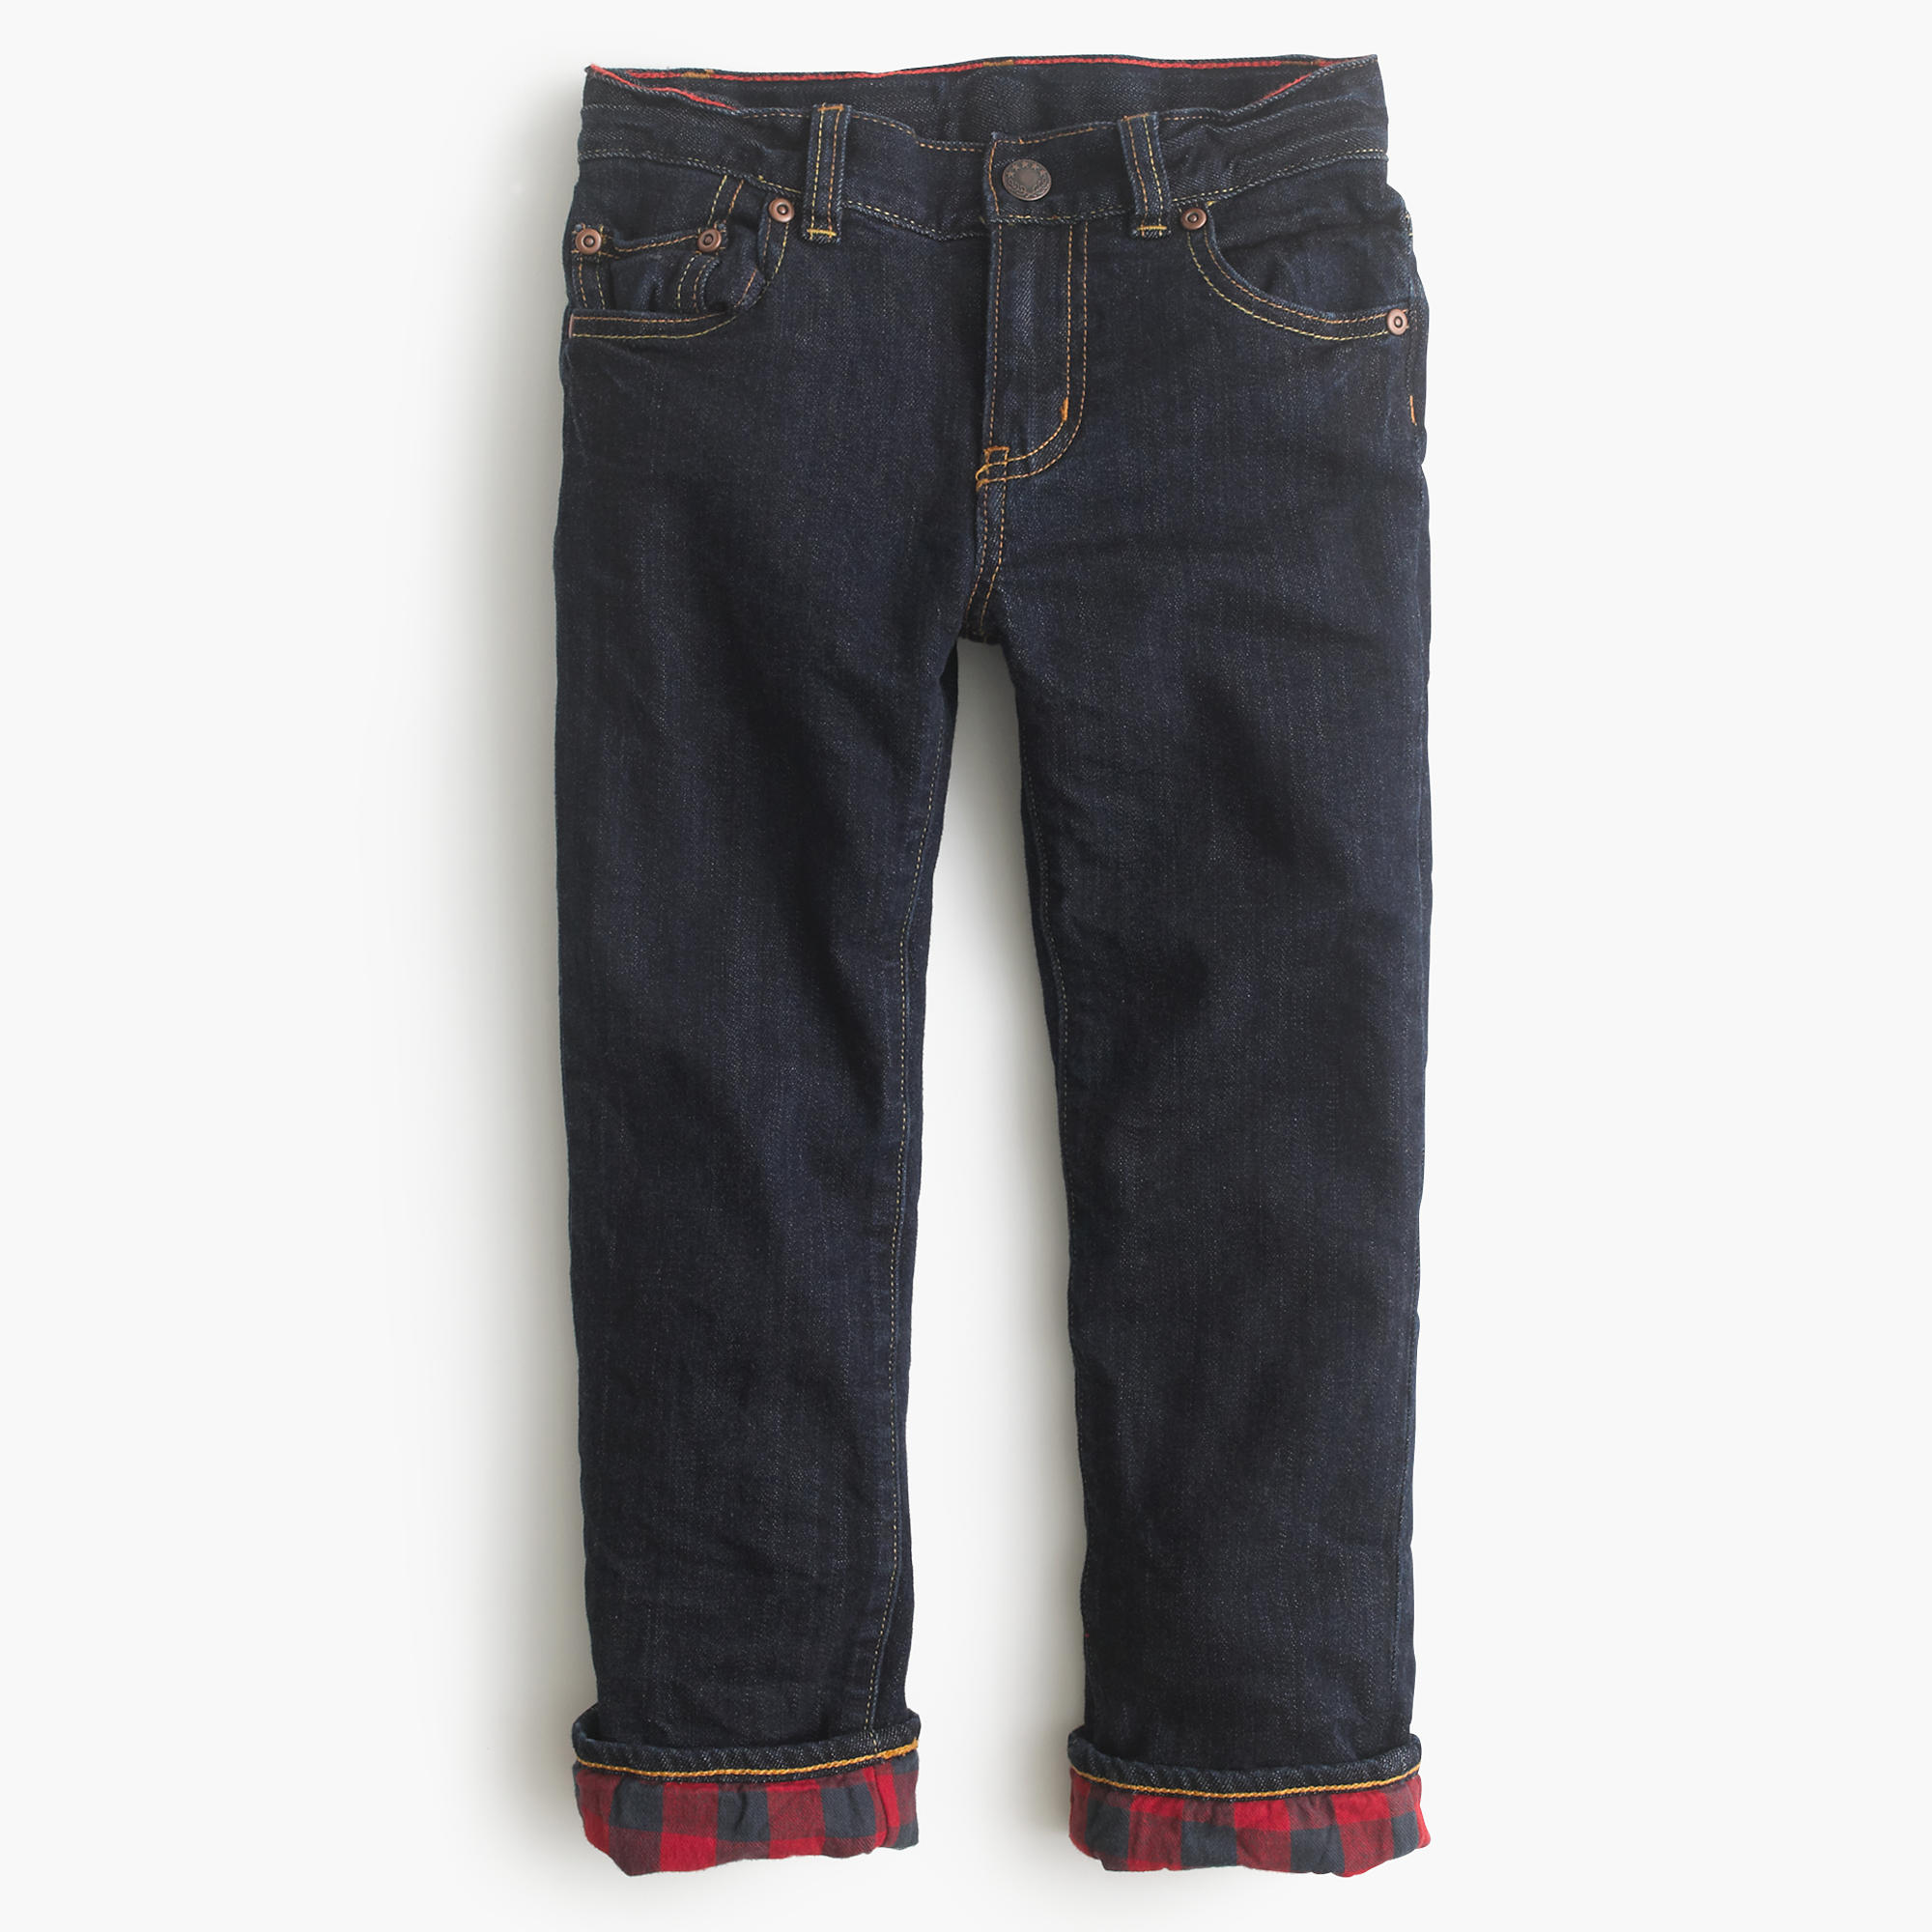 Shop for boys flannel jean online at Target. Free shipping on purchases over $35 and save 5% every day with your Target REDcard.